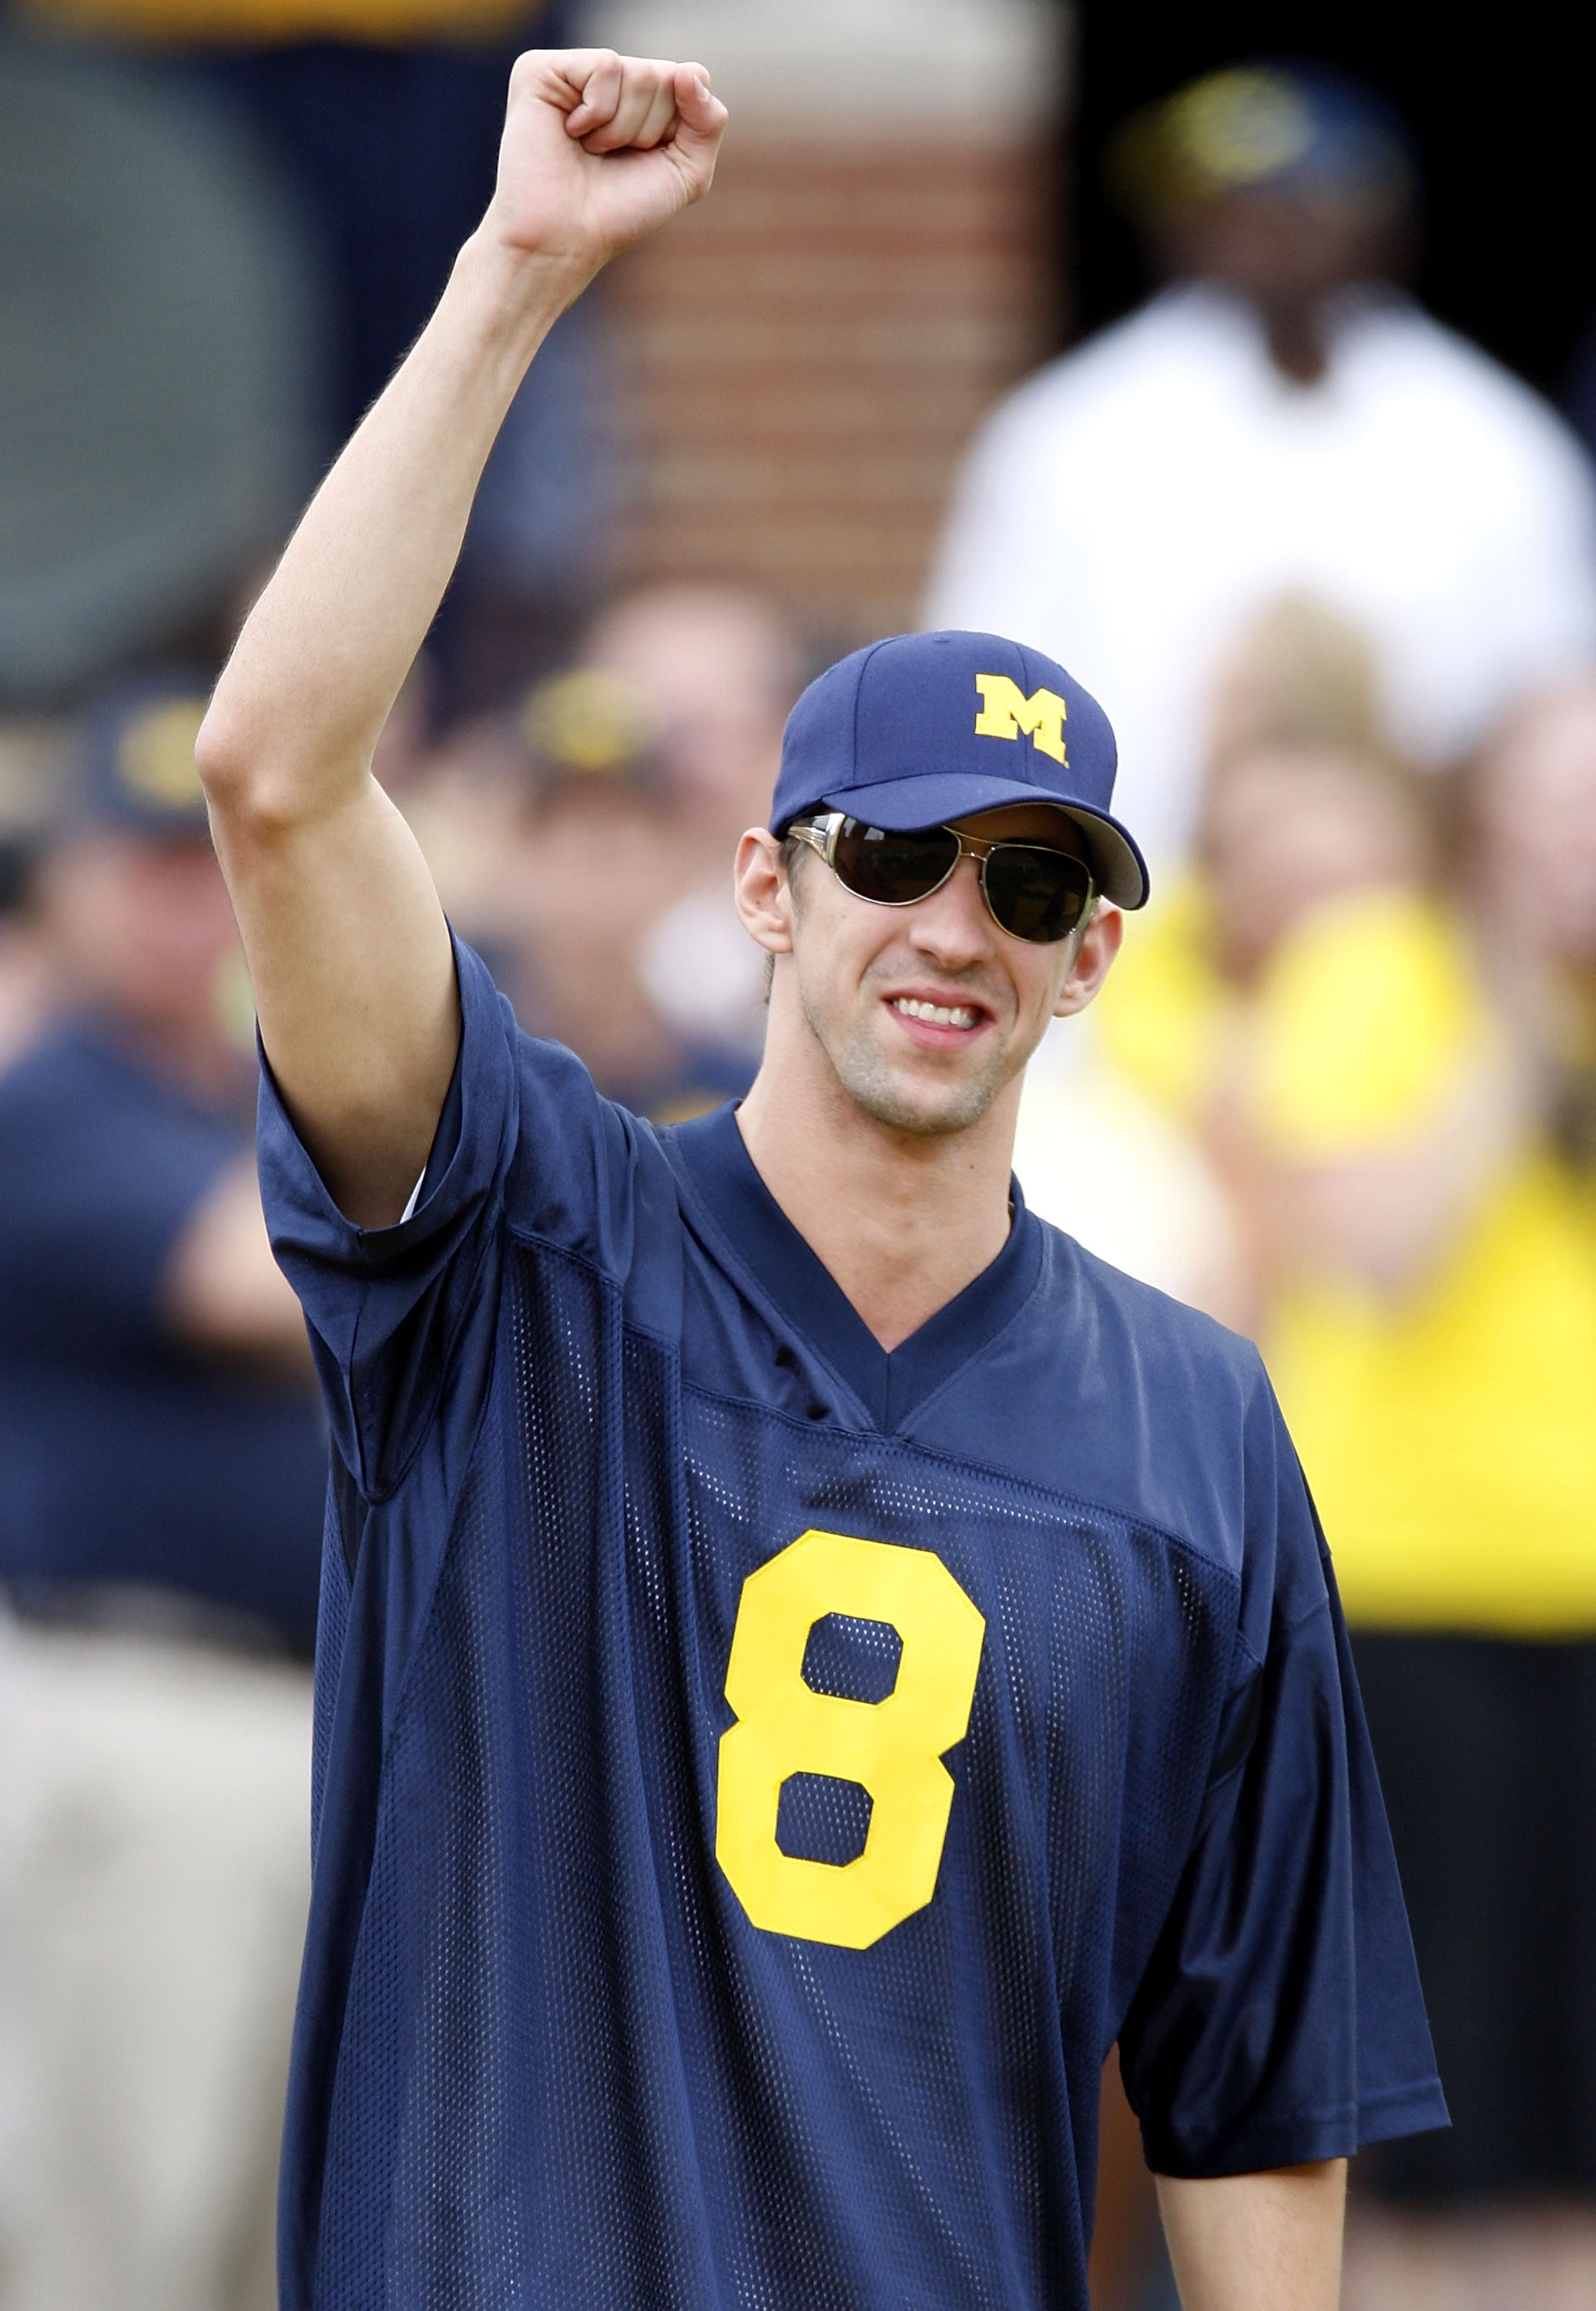 ANN ARBOR, MI - SEPTEMBER 27: 2008 Olympic gold medal winner Michael Phelps is introduced prior to the game between the Wisconsin Badgers and the Michigan Wolverines on September 27, 2008 at Michigan Stadium in Ann Arbor, Michigan. (Photo by Gregory Shamu